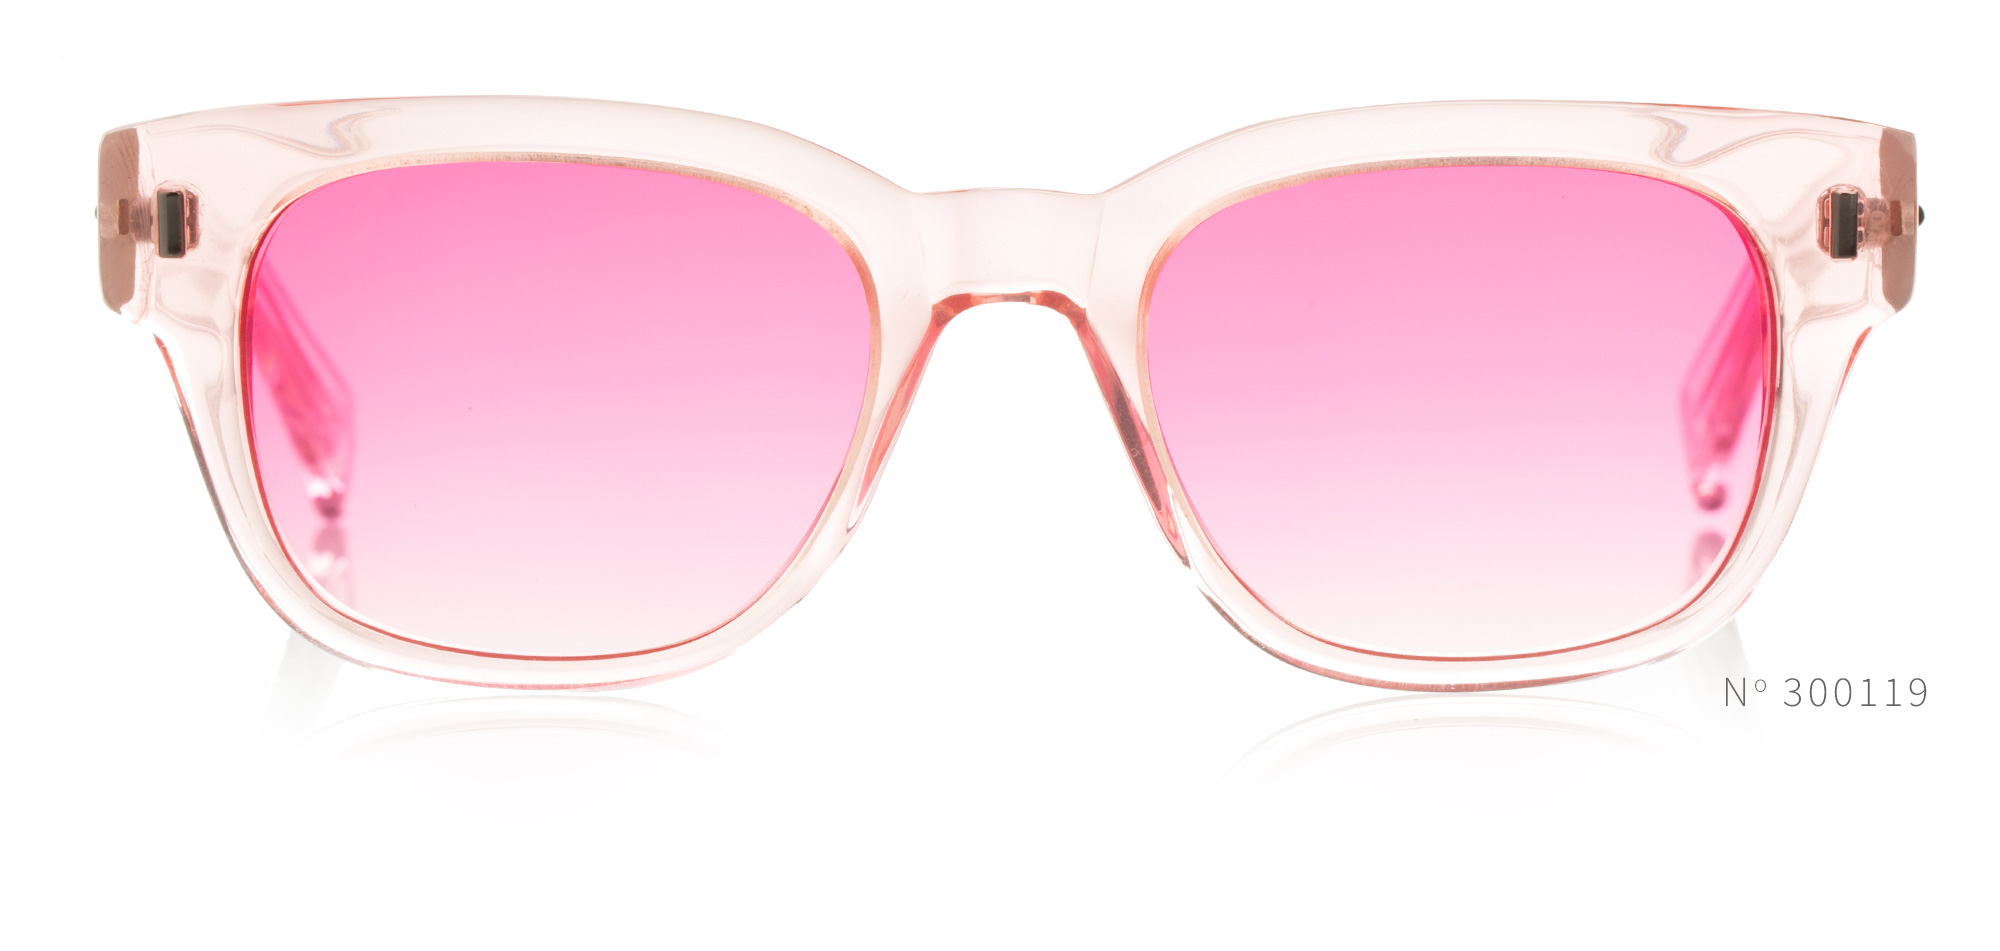 Rose Tinted Sunglasses  a guide to spring 2016 eyewear fashion through the lens